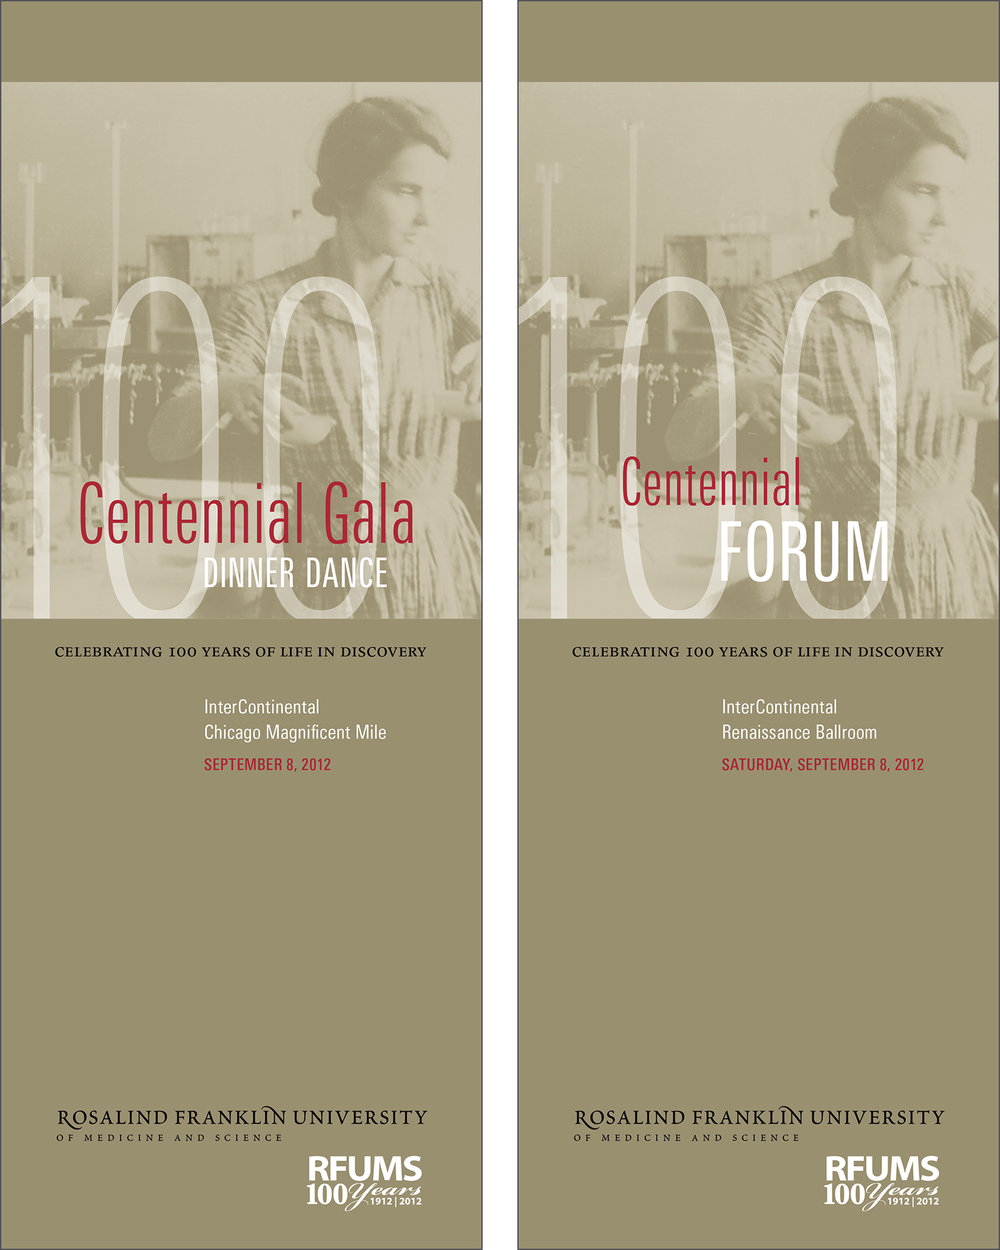 gala_program covers.jpg